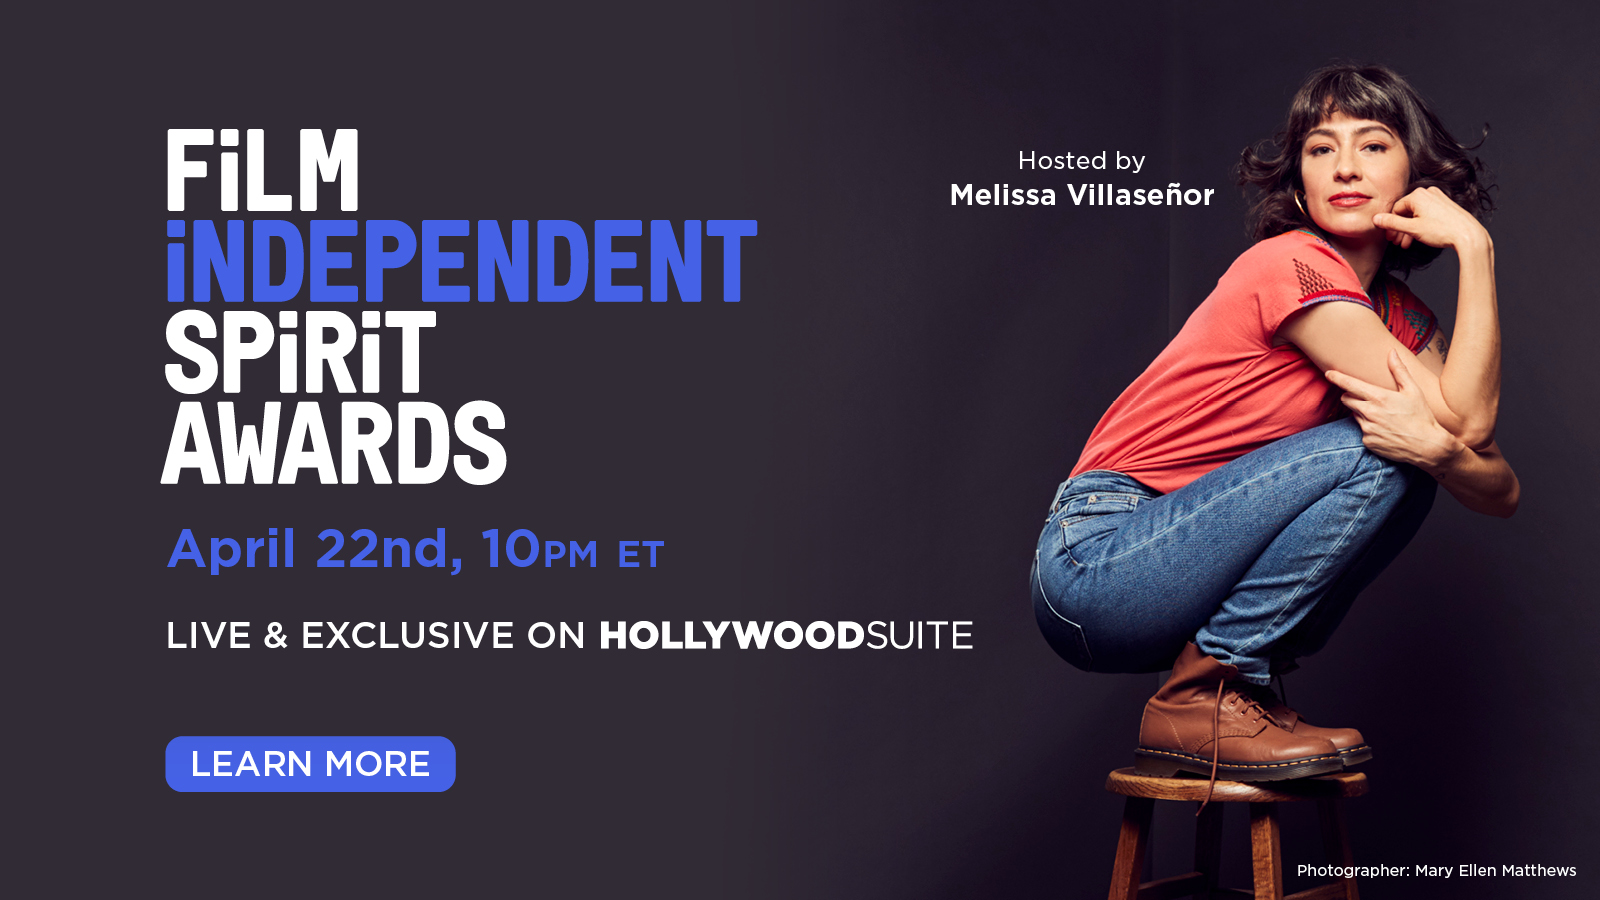 Film Independent Spirit Awards Live & Exclusive on Hollywood Suite April 22 at 10pm ET Learn More